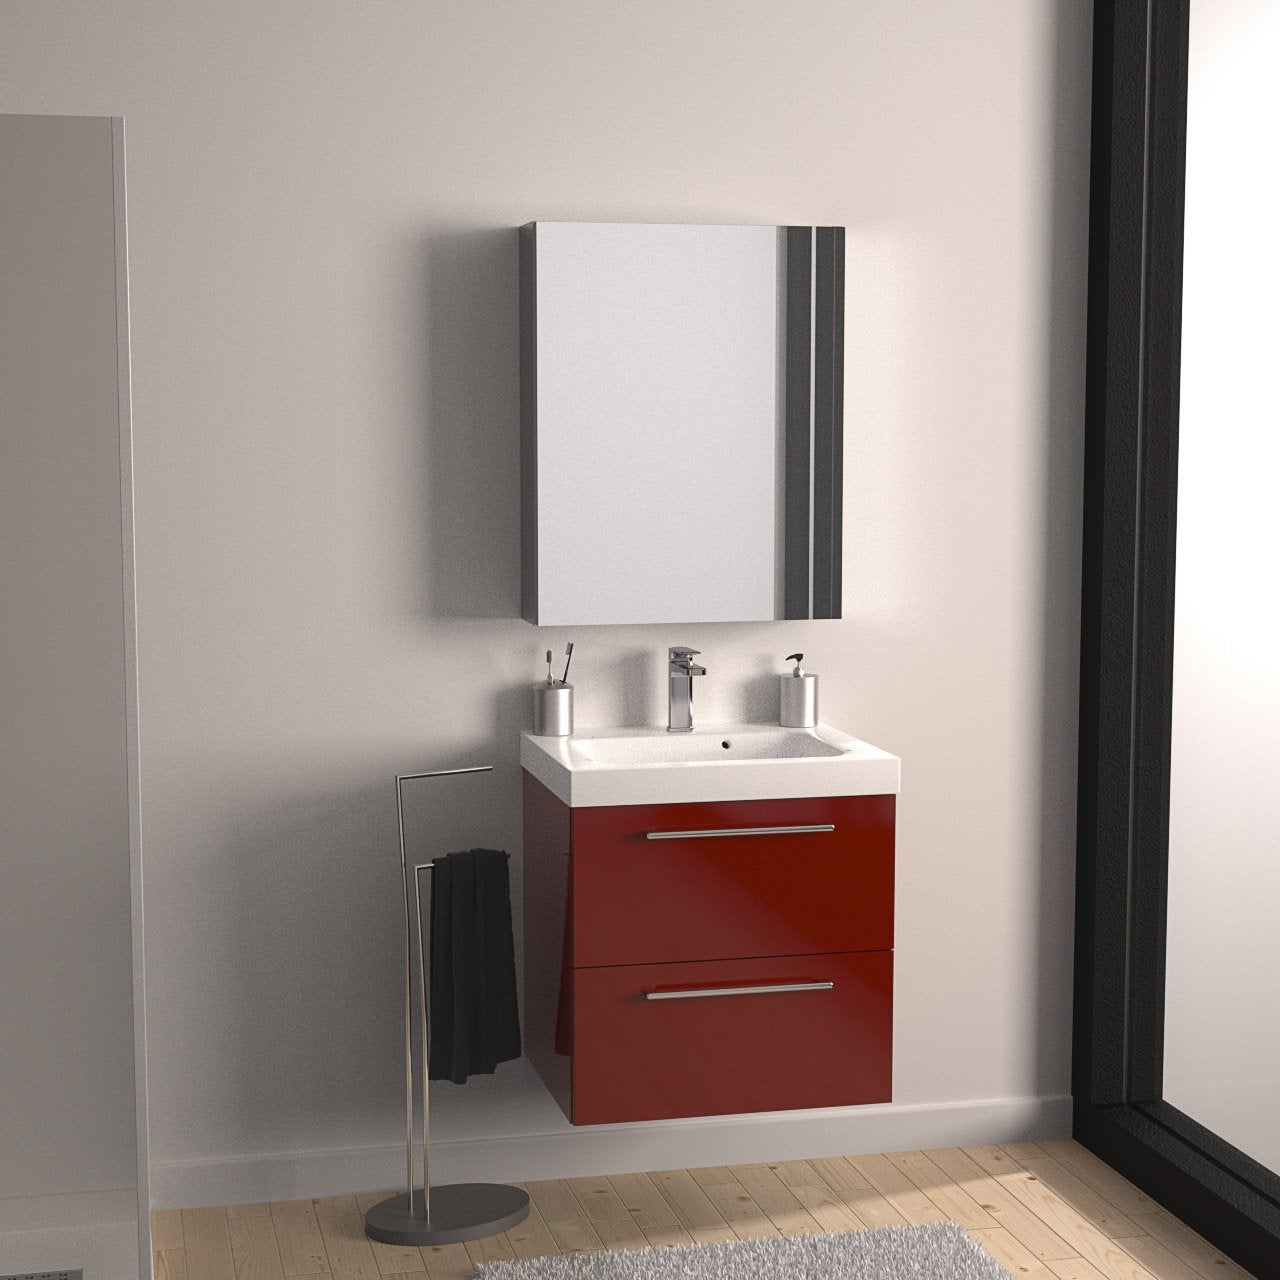 Meuble vasque 61 cm rouge, Remix | Leroy Merlin